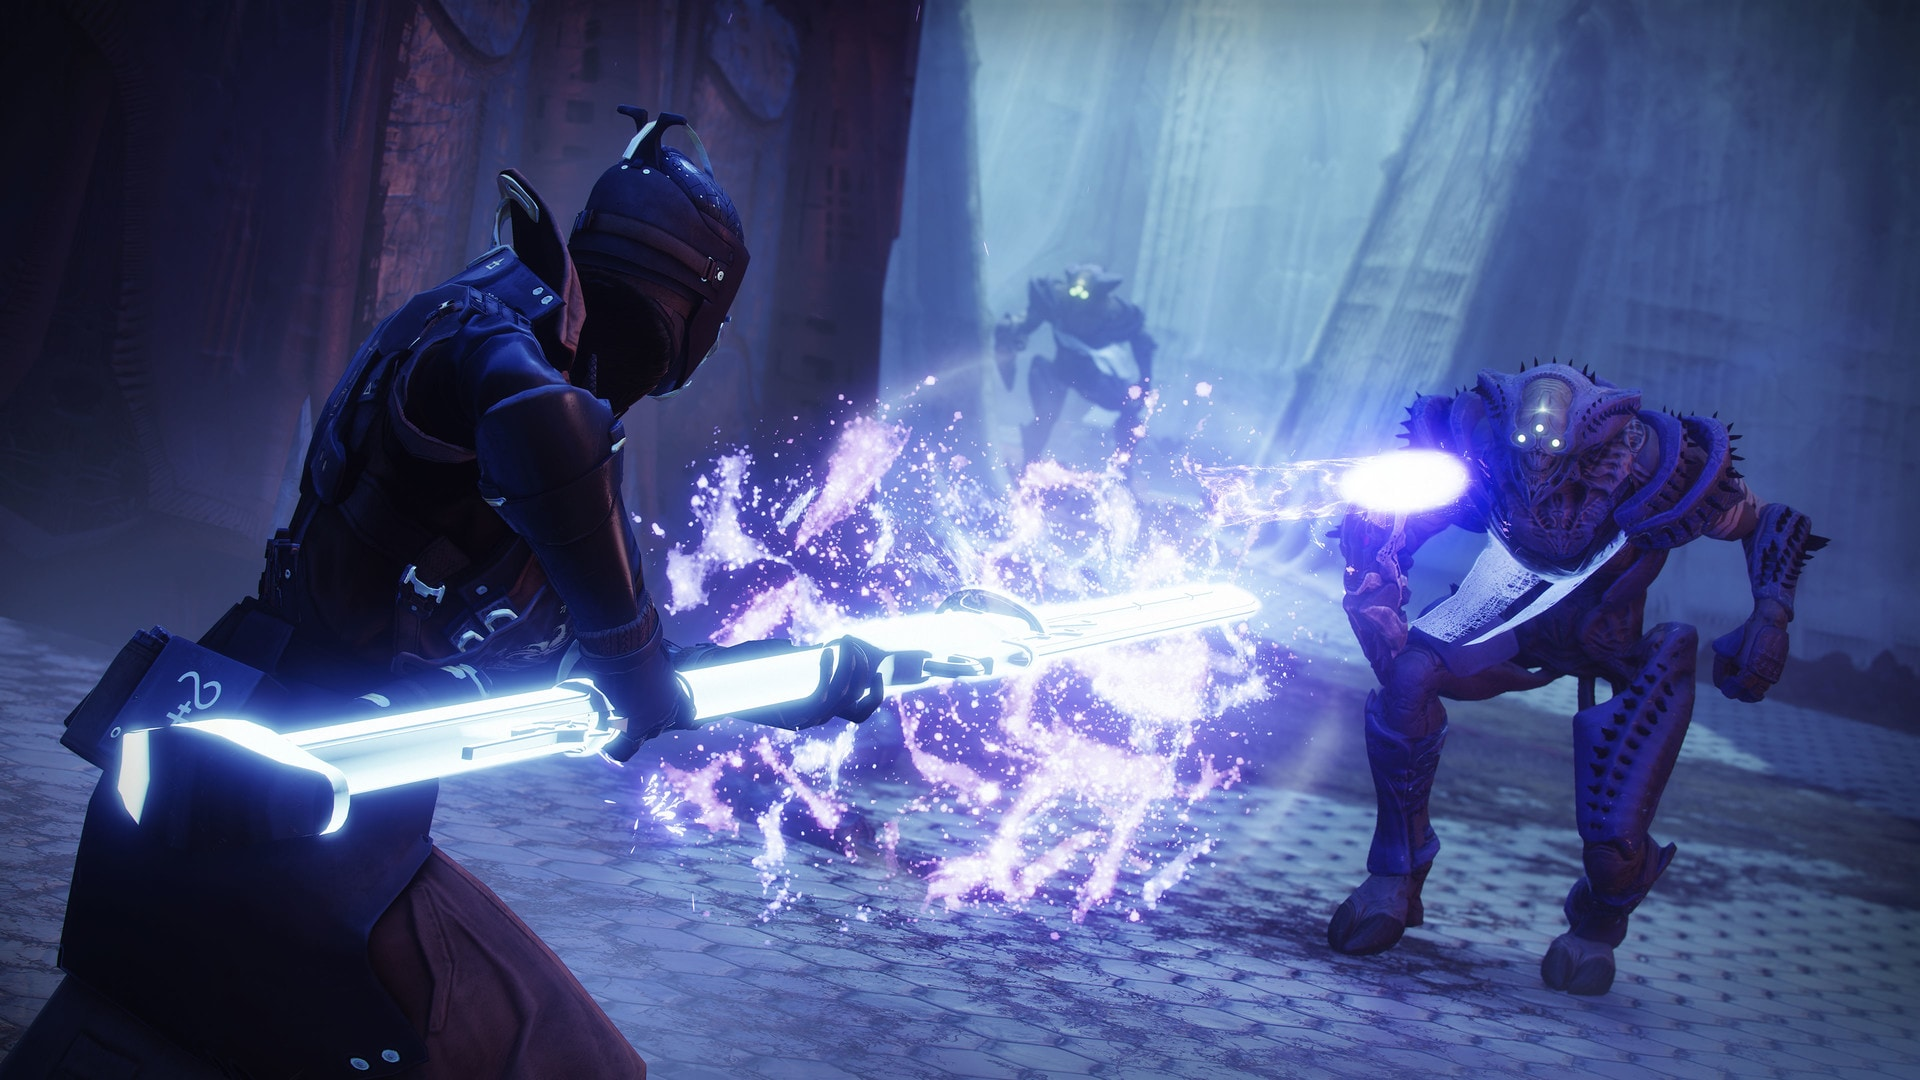 Destiny 2: The Witch Queen | Pre-Purchase (PC) - Steam Key - GLOBAL - 3